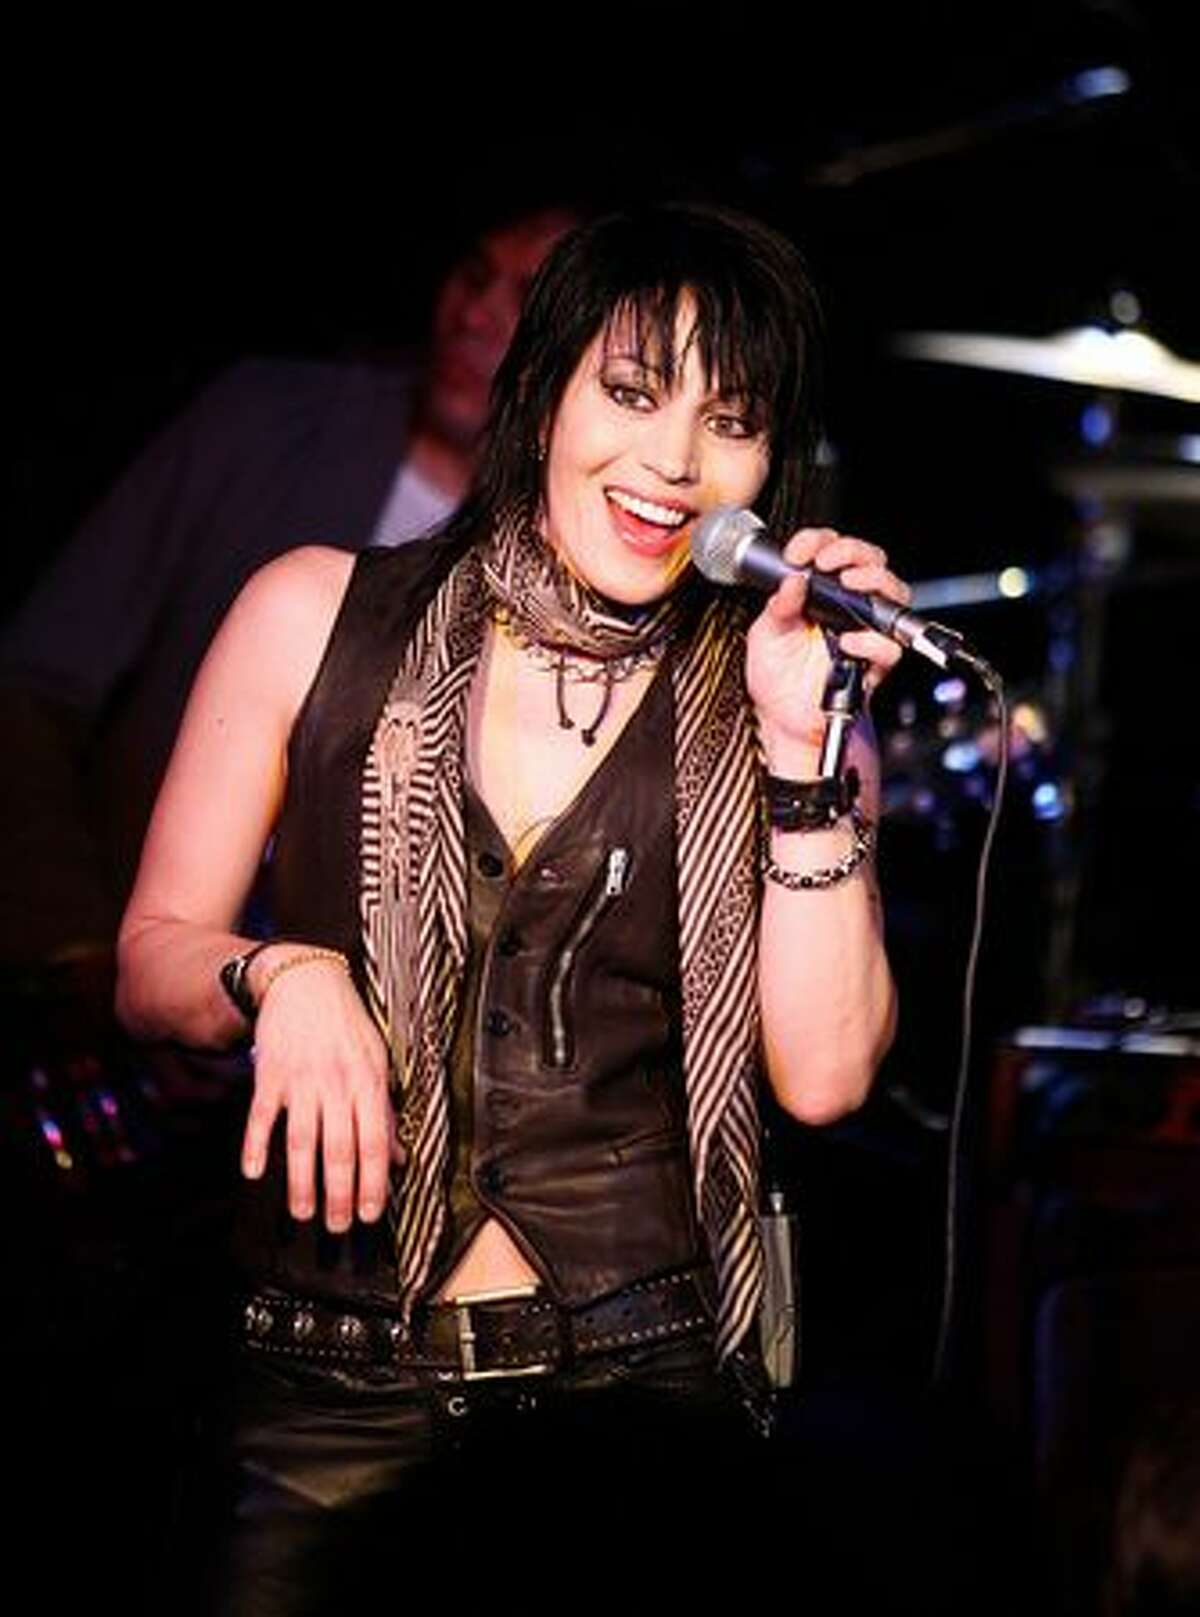 Joan Jett - Looked up to by rock girl wannabes all over the world, the Runaways founding member has appeared on several dates, opening for artists like Def Leppard, and most recently at Sundance, where a film about her life is making the rounds.